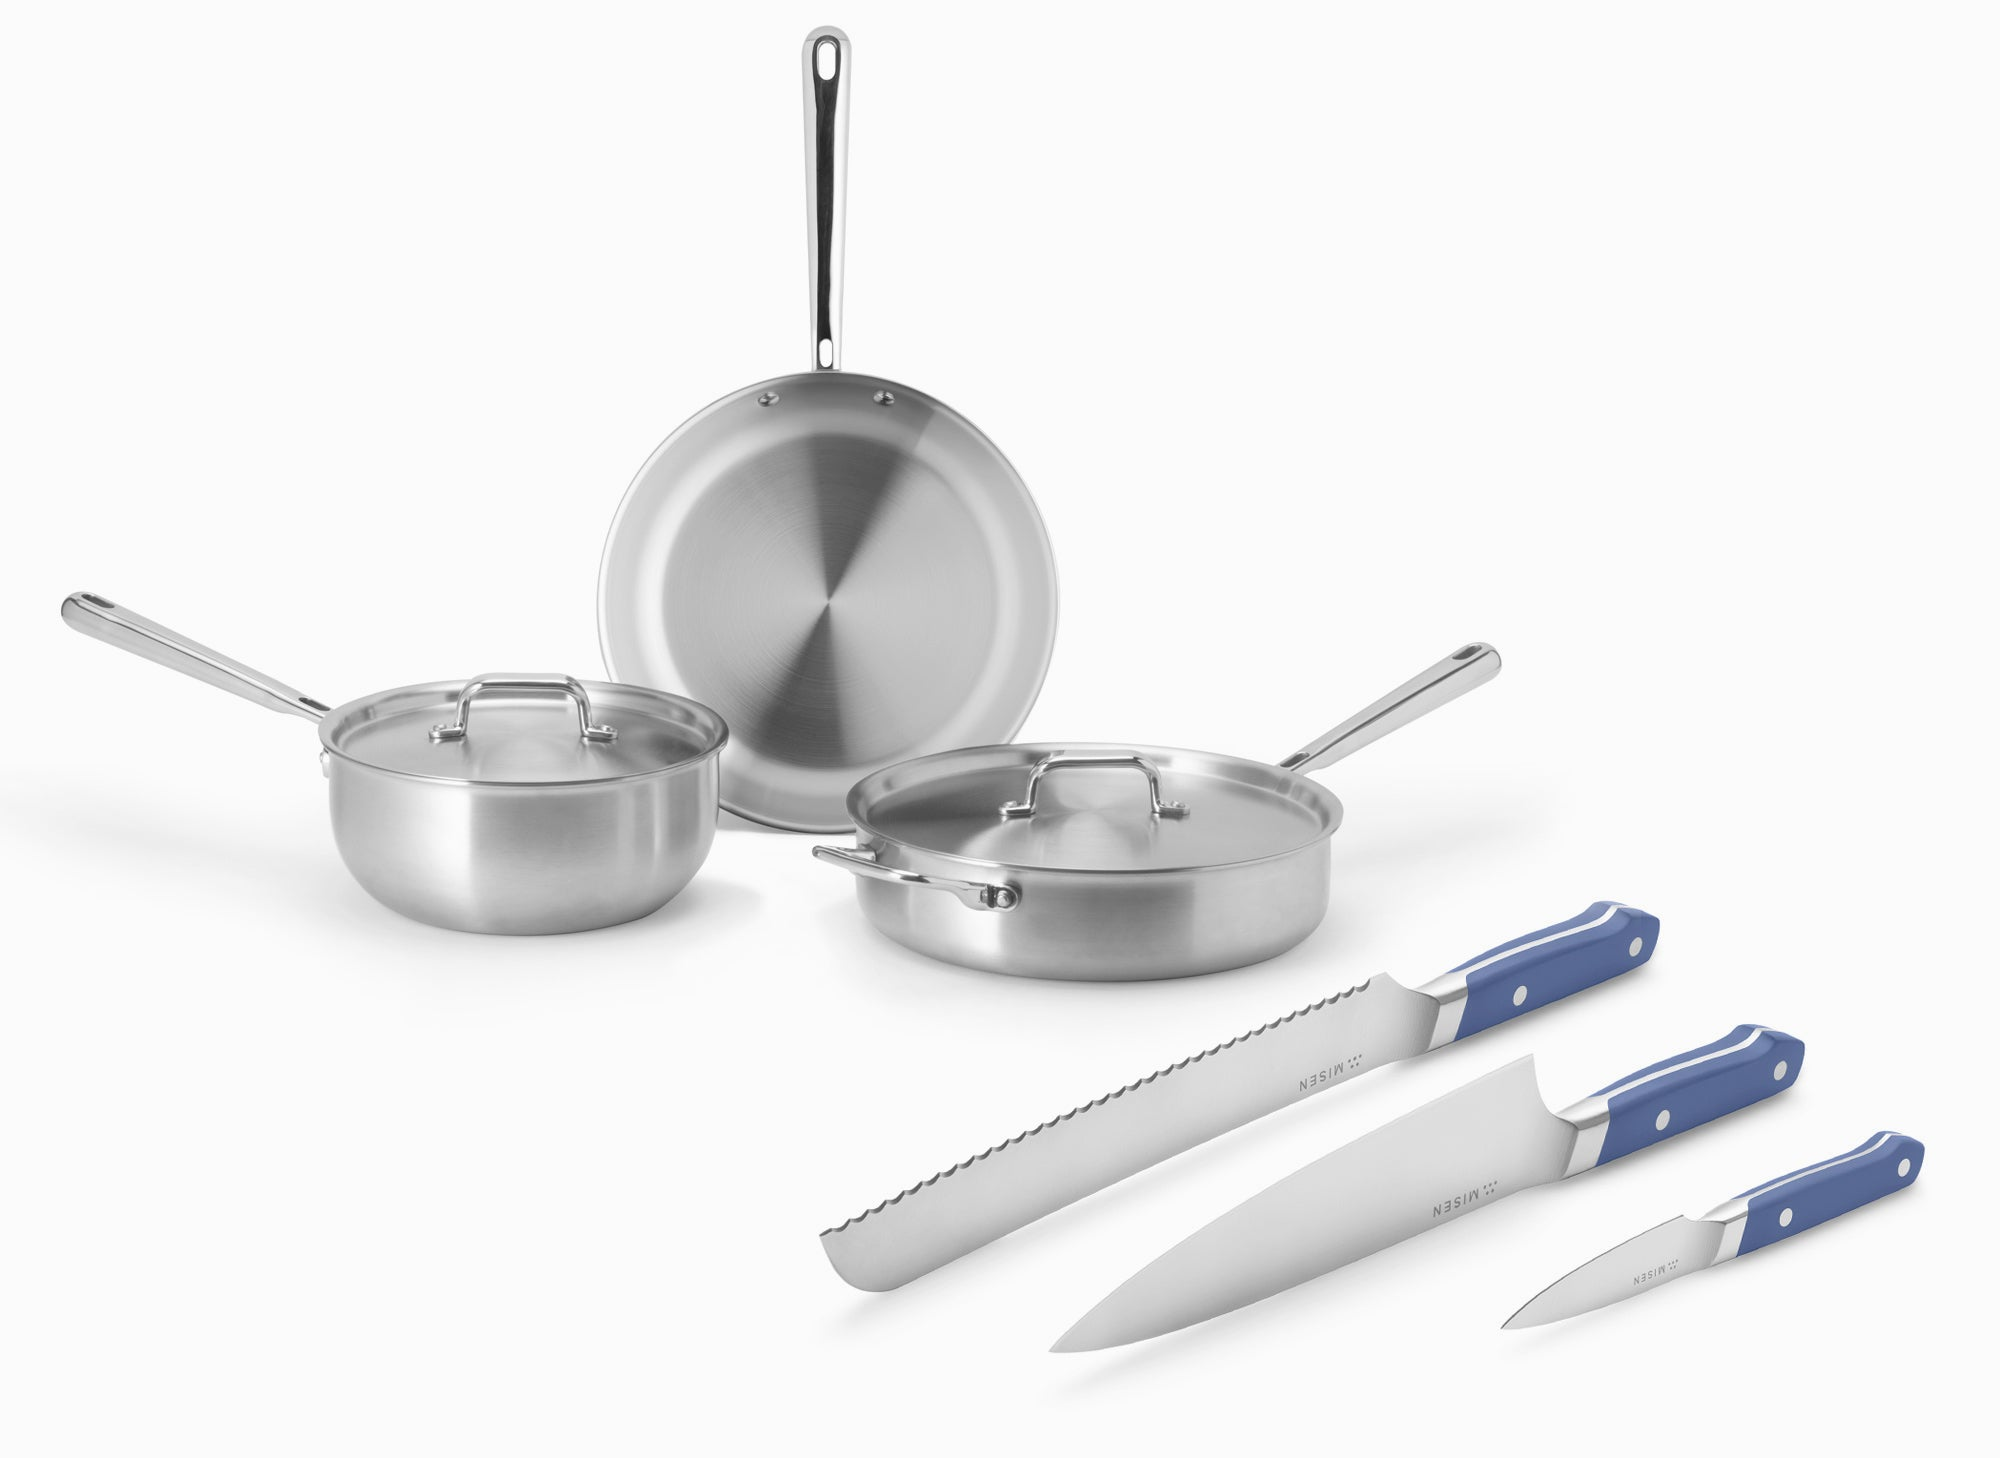 Cookware + Knife Bundles